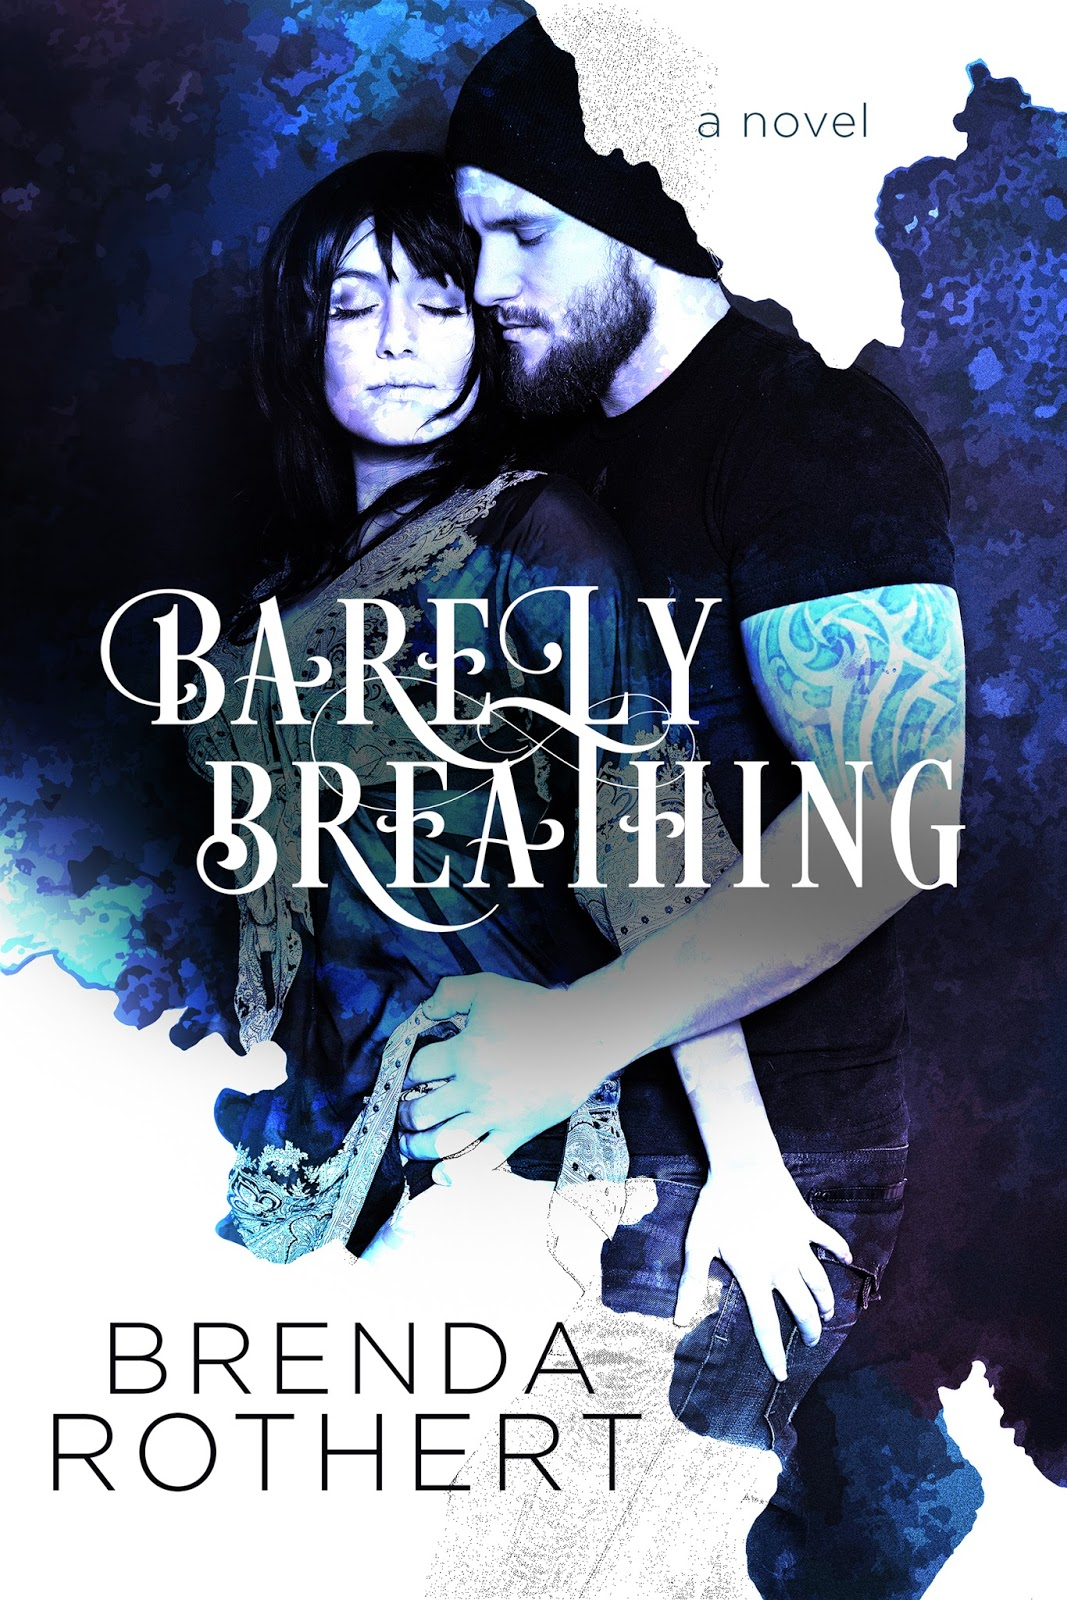 d6e4b-barelybreathing-final-ebooklg